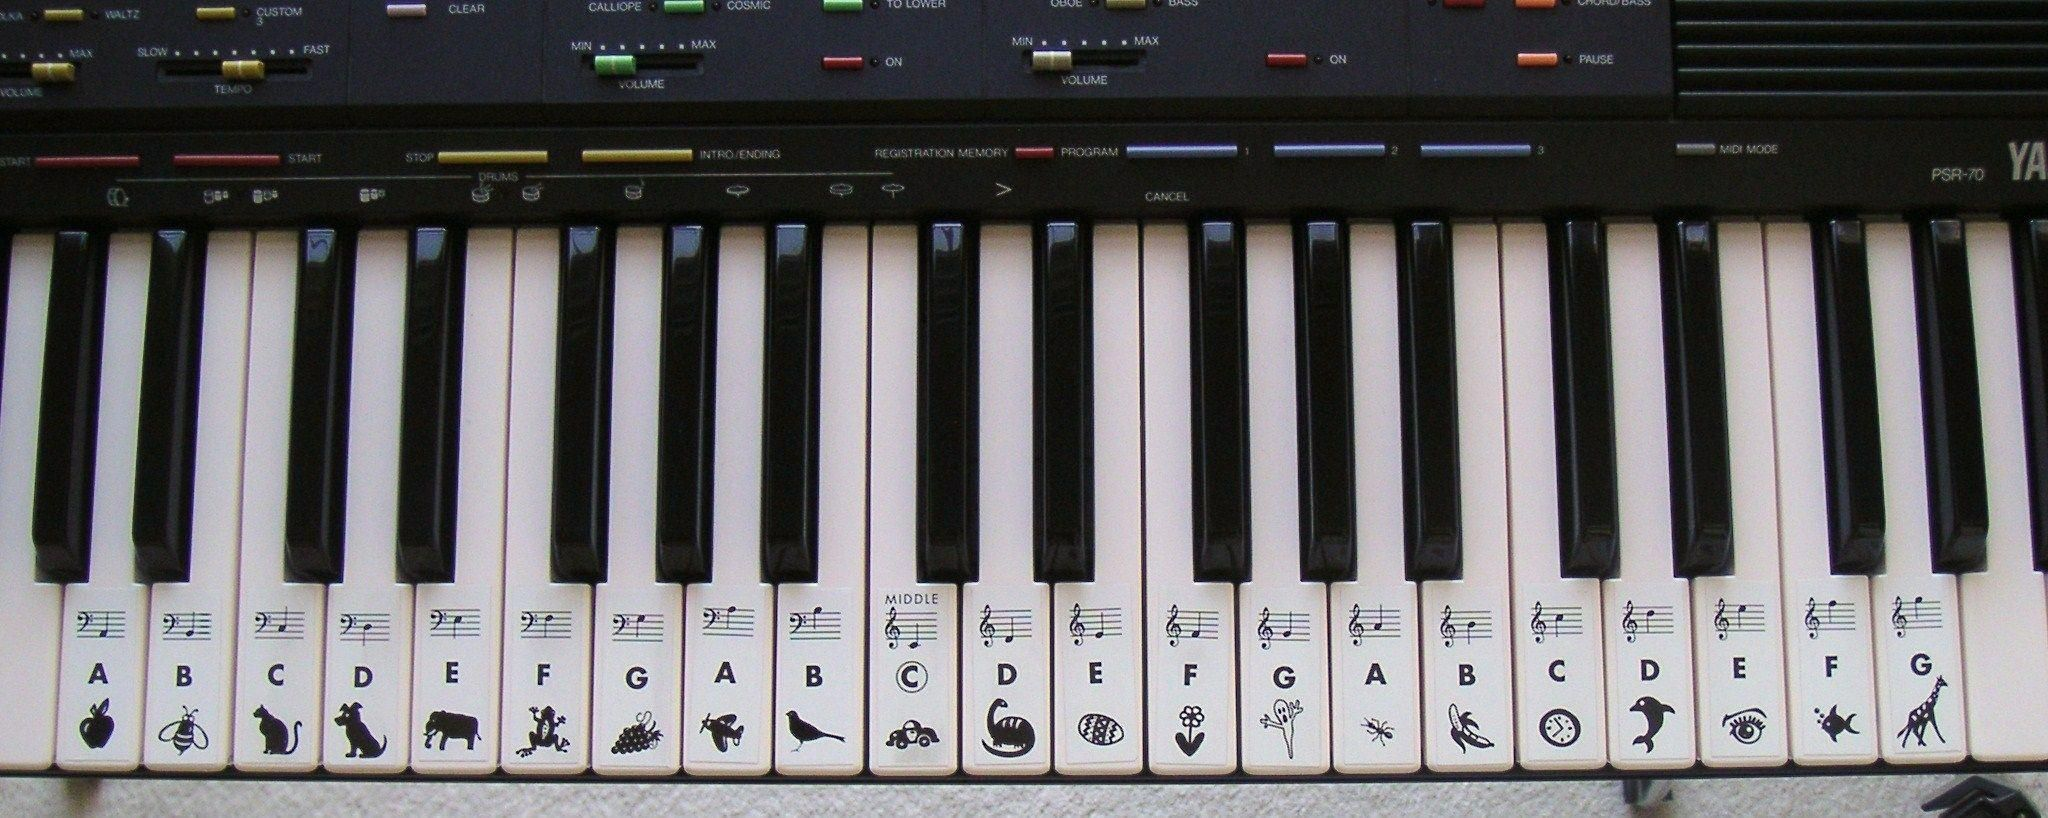 Grand Piano Keys Notes Details About Grand Staff 2 Piano Key Finder Keyboard Stickers Decal Piano Piano Keys And Notes Keyboard Stickers